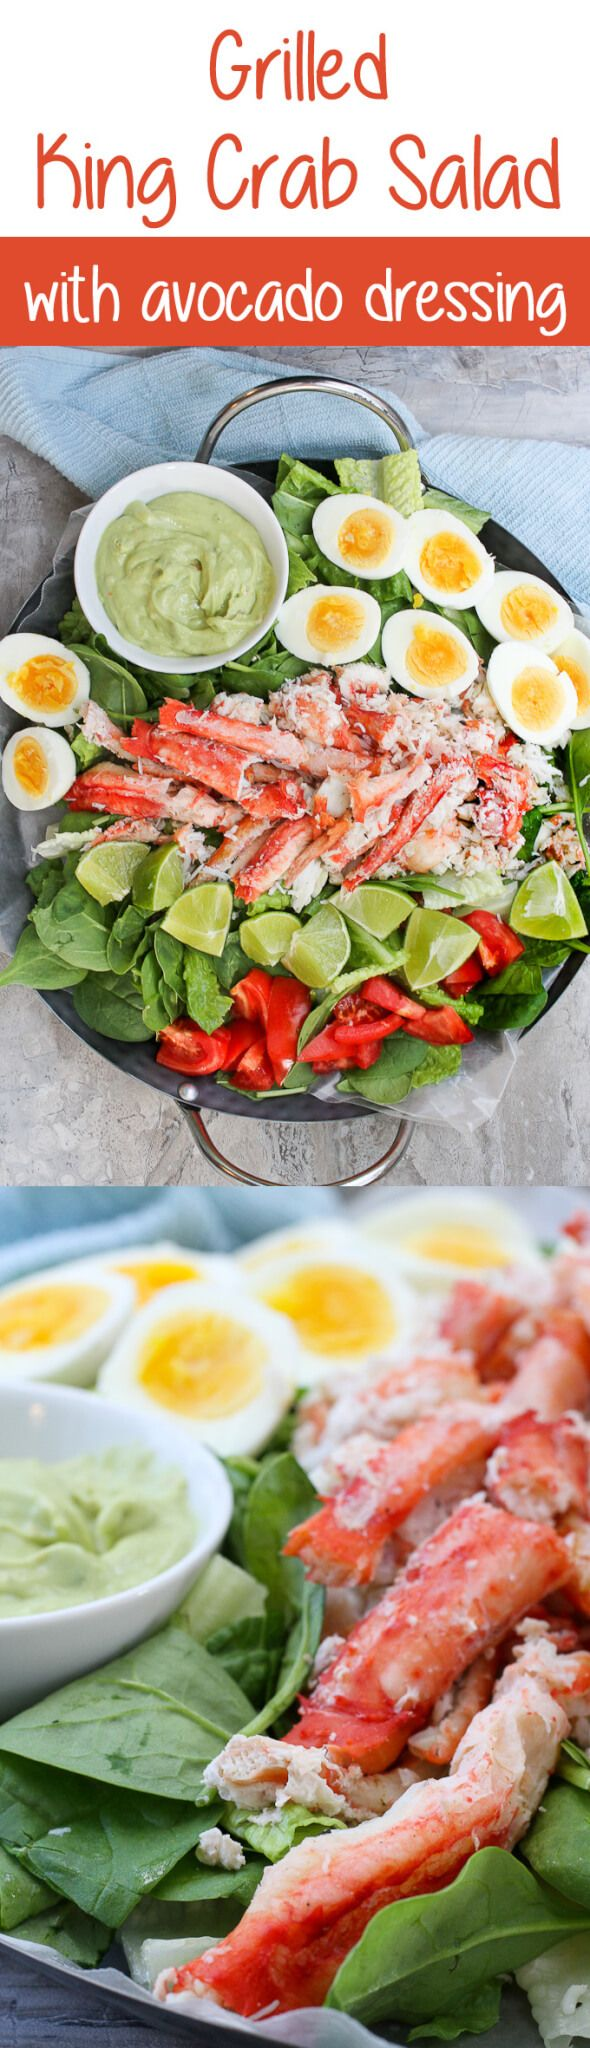 #ad This Grilled King Crab Salad with Creamy Avocado is delicious at home or at a picnic, and is a light, refreshing, and healthy seafood salad! #seafood #crab #crablegs #crabsalad #kingcrab